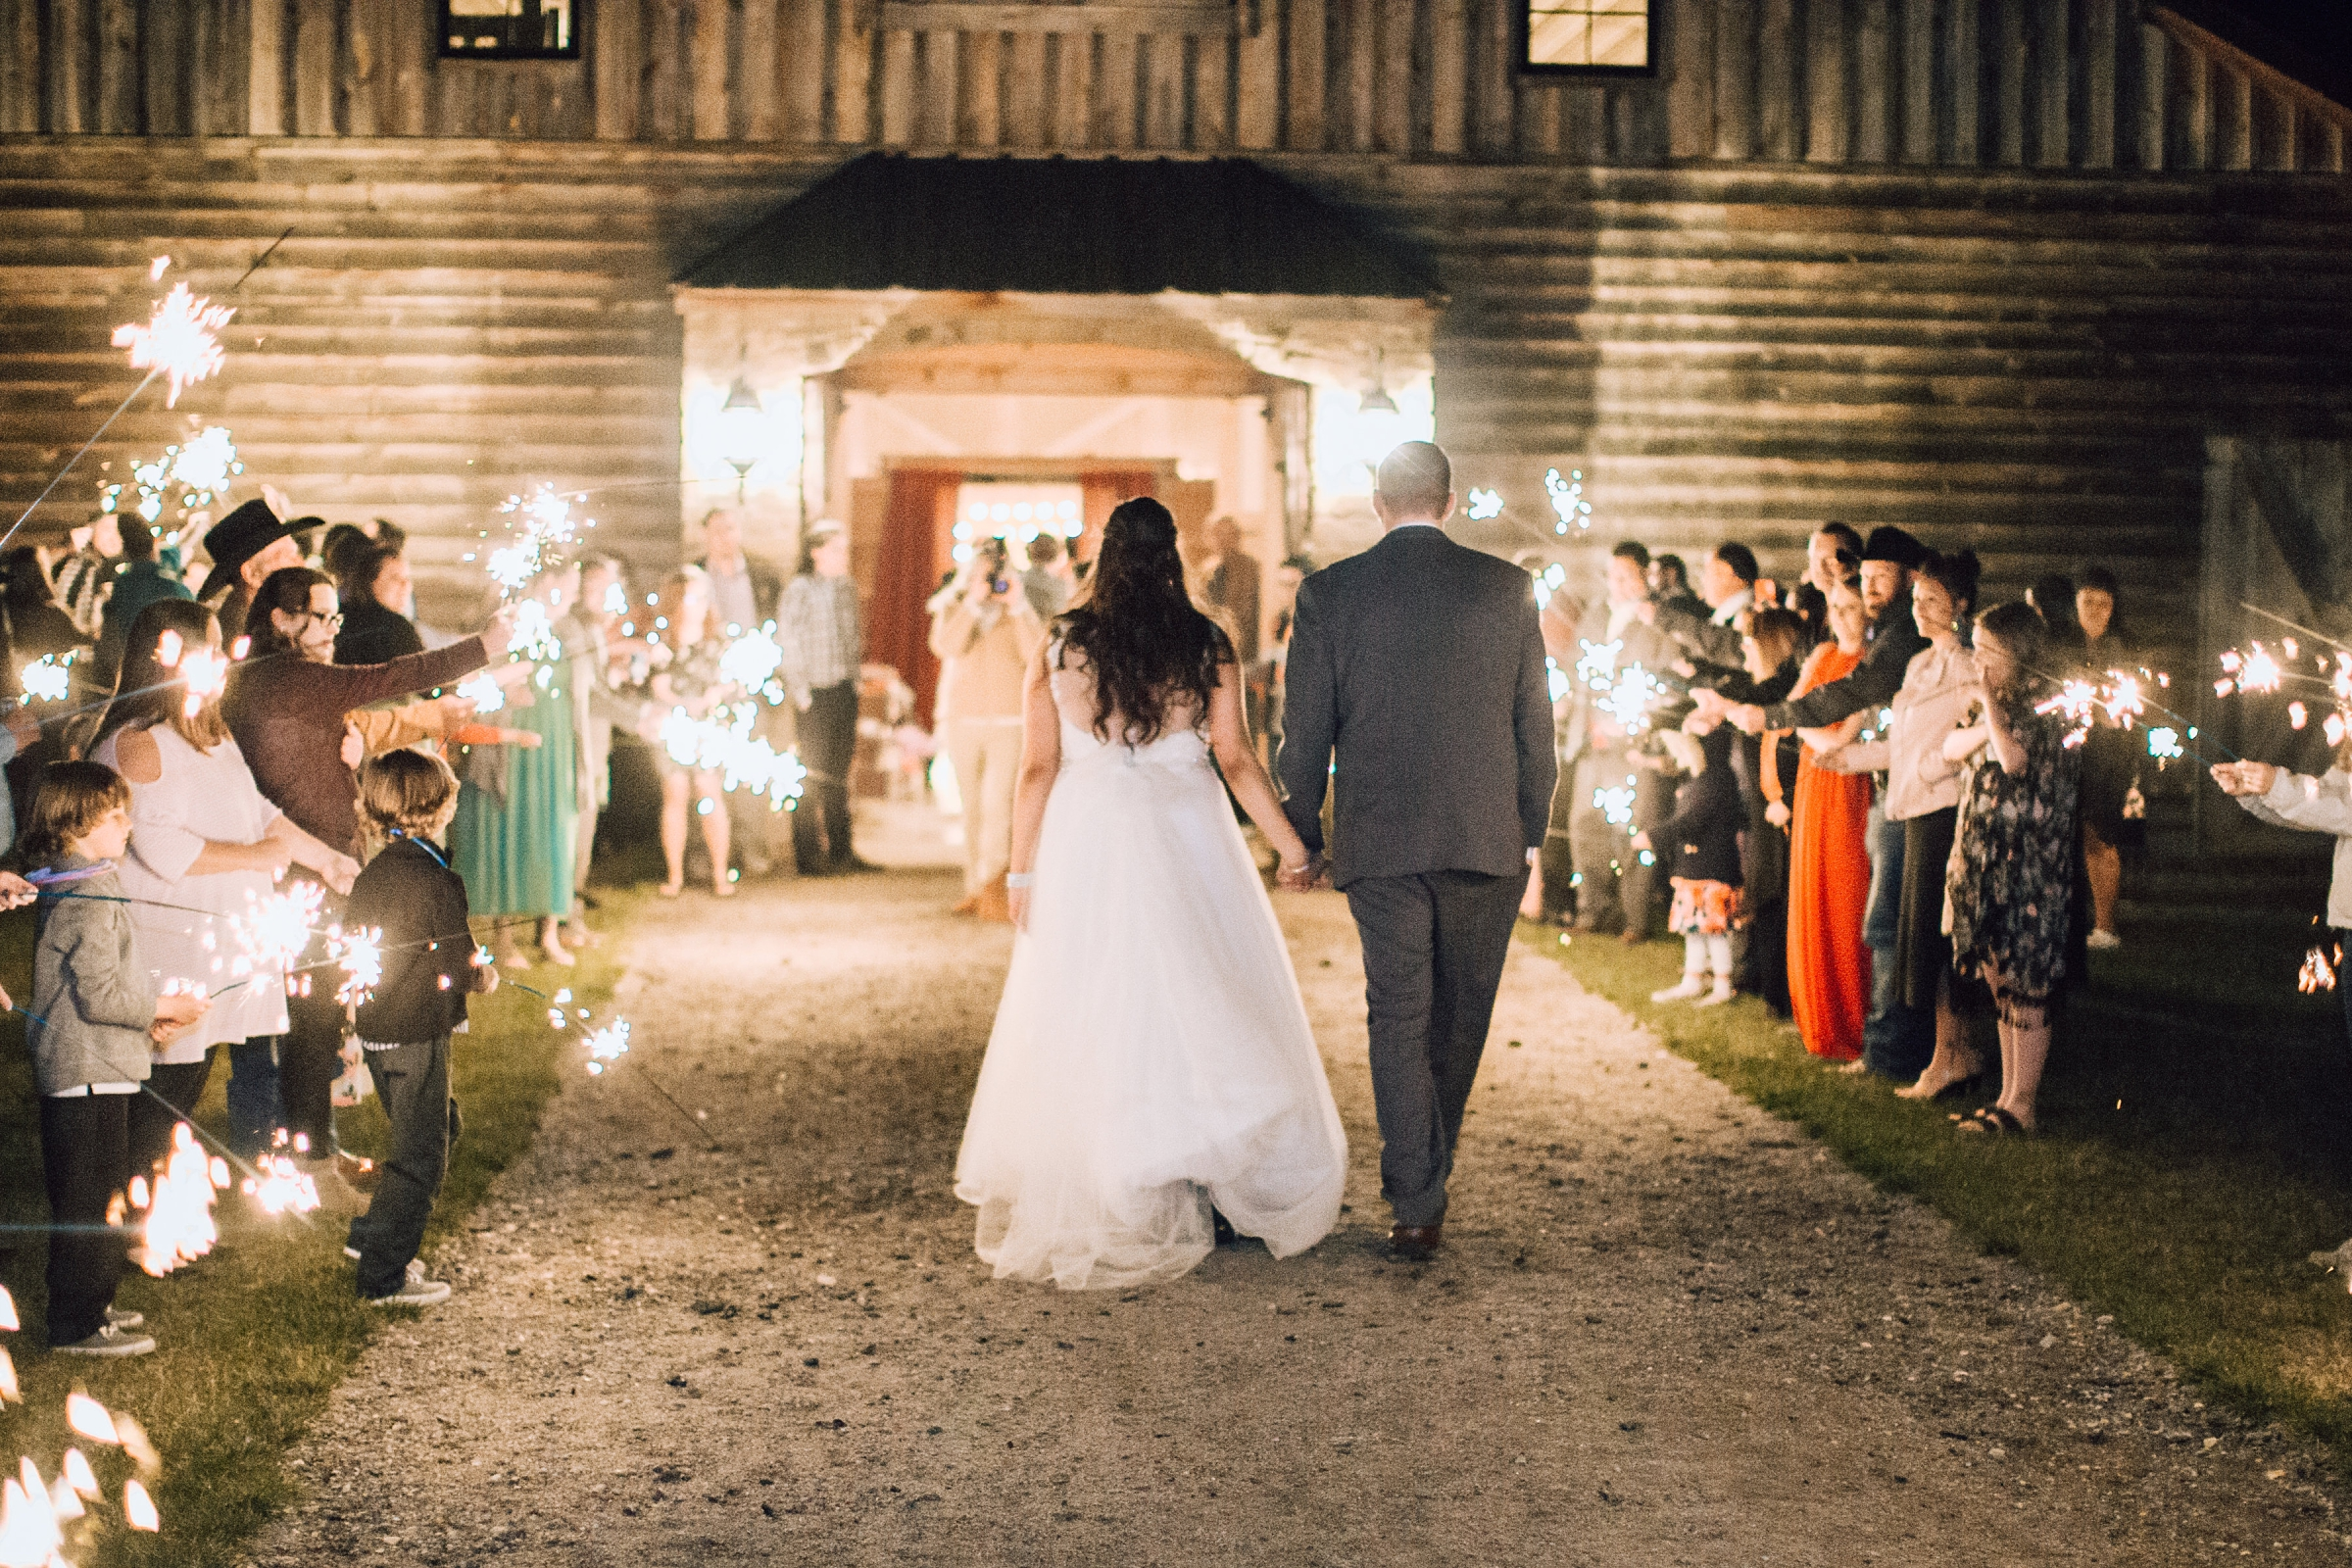 The Most Pretty Rustic Barn Wedding In The Kansas Countryside